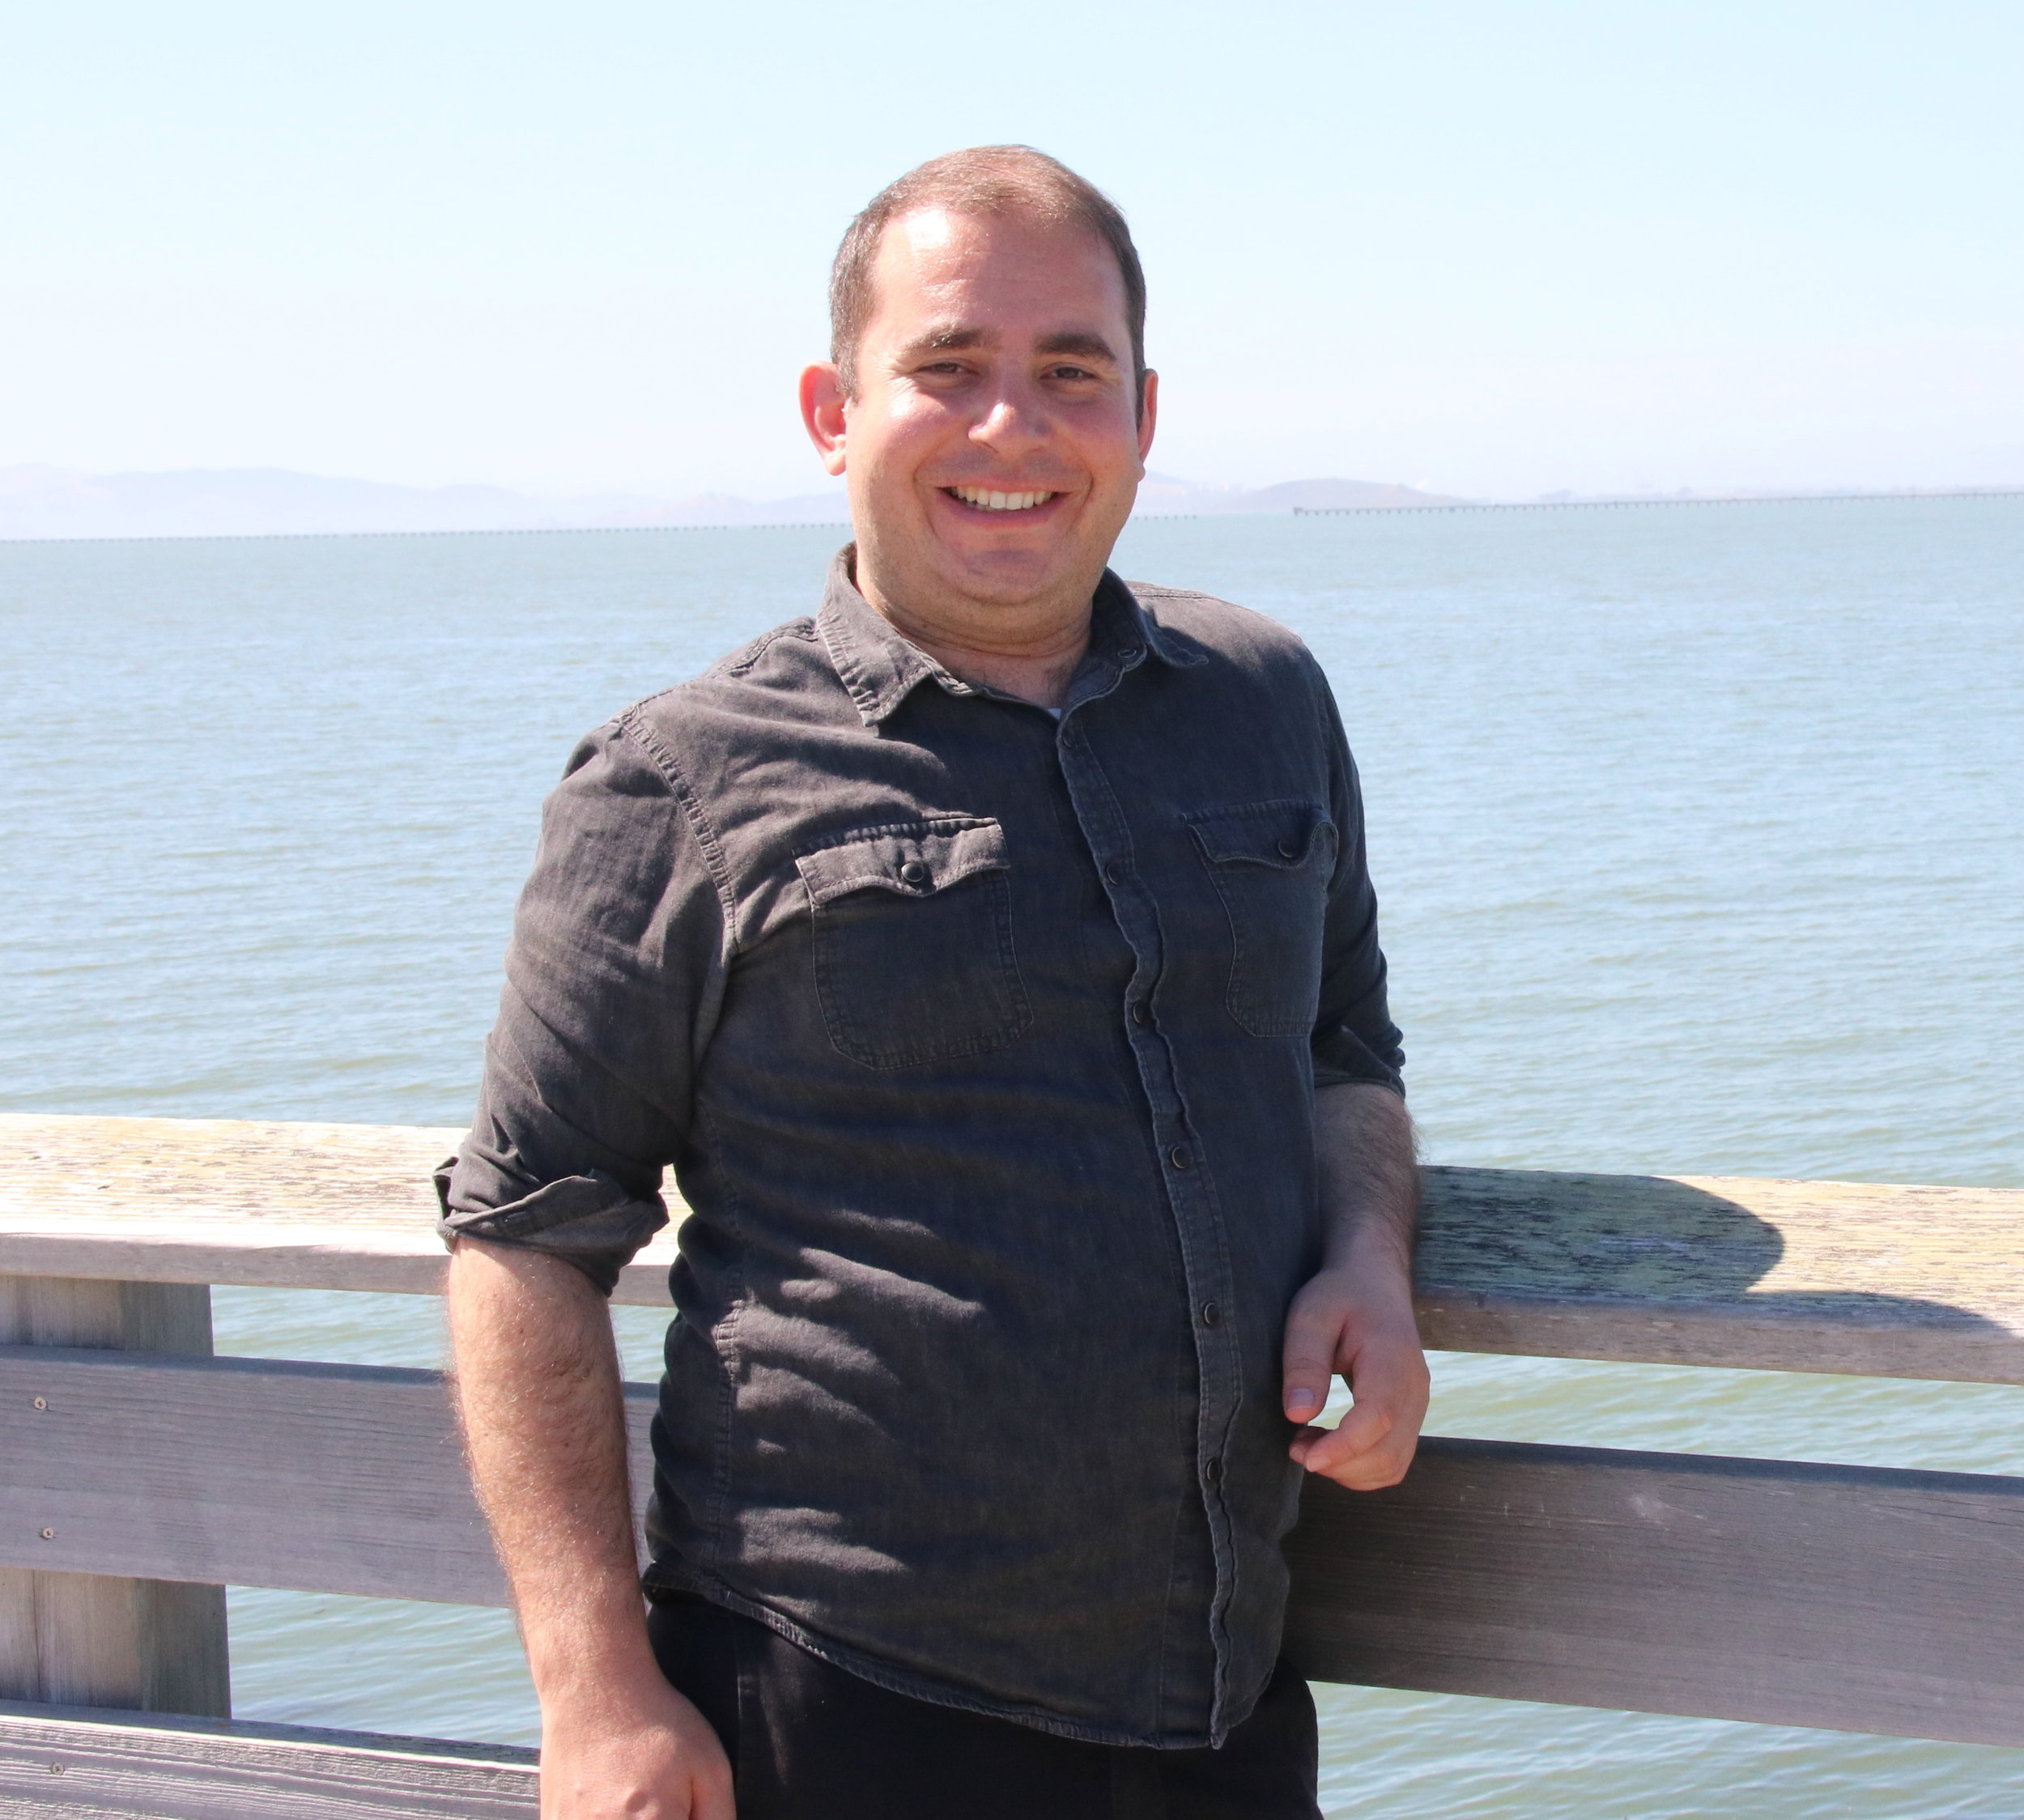 ERIC YOUNG, AMFT - North Bay & Marin Queer LGBTQ+ Psychotherapy for Transgender, Non-binary, Queer Individuals and Couples